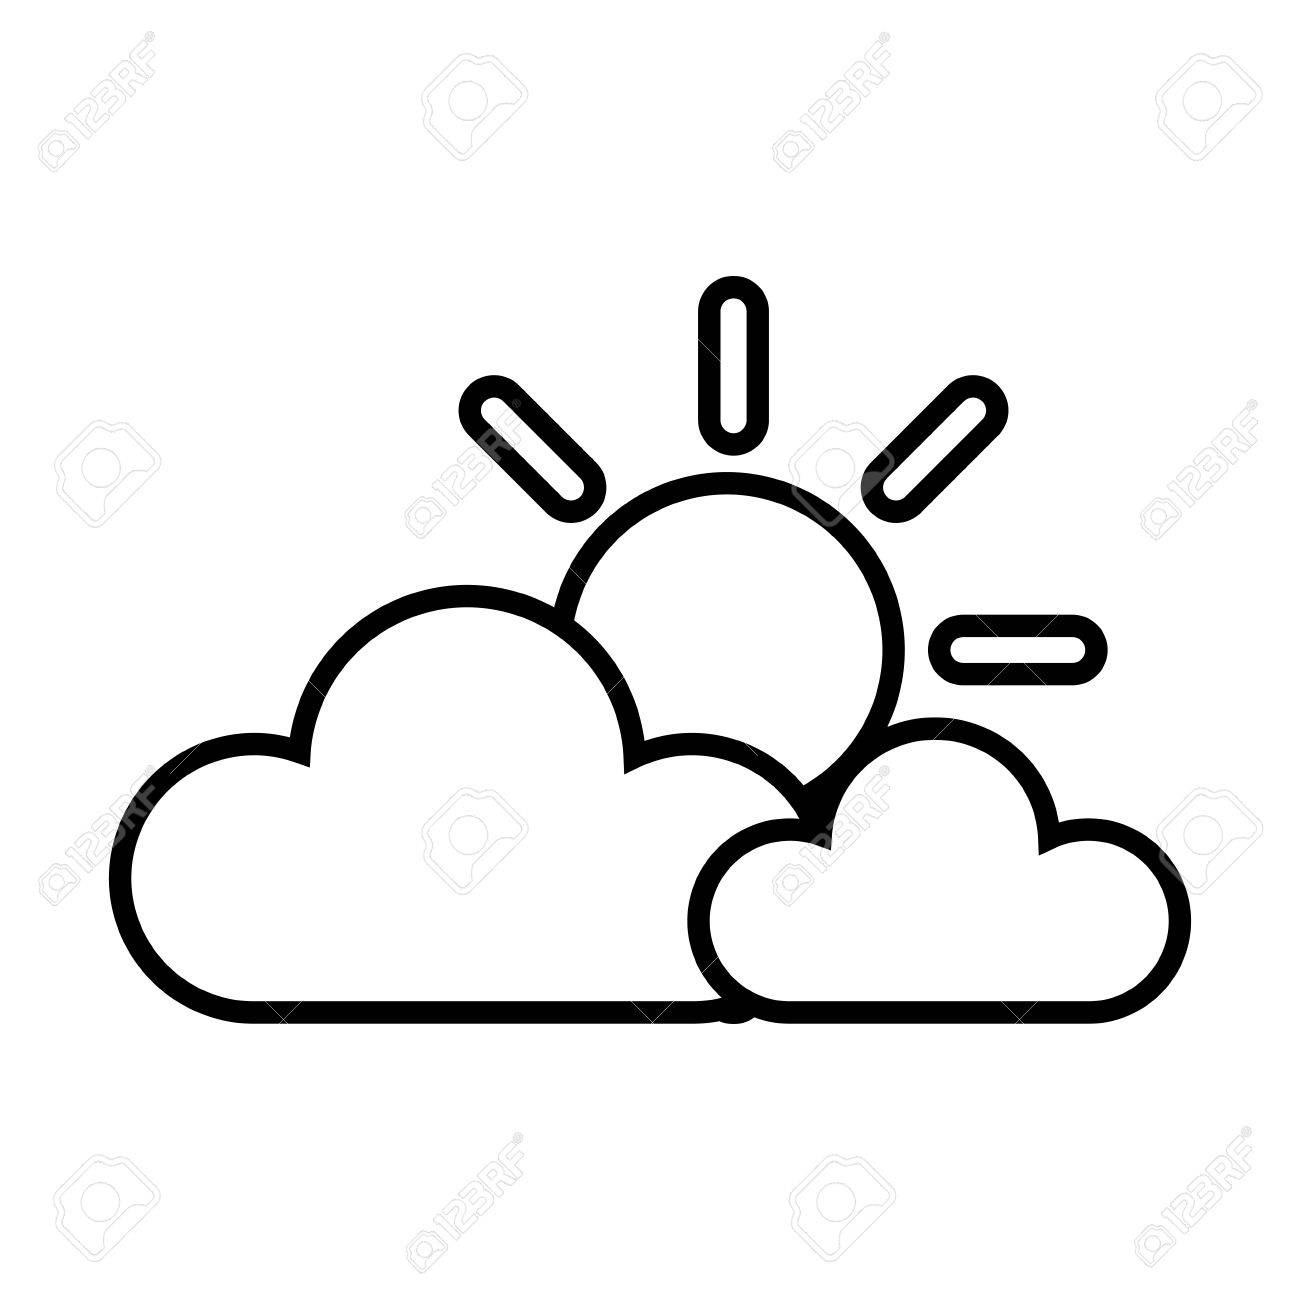 Black and white sky clipart